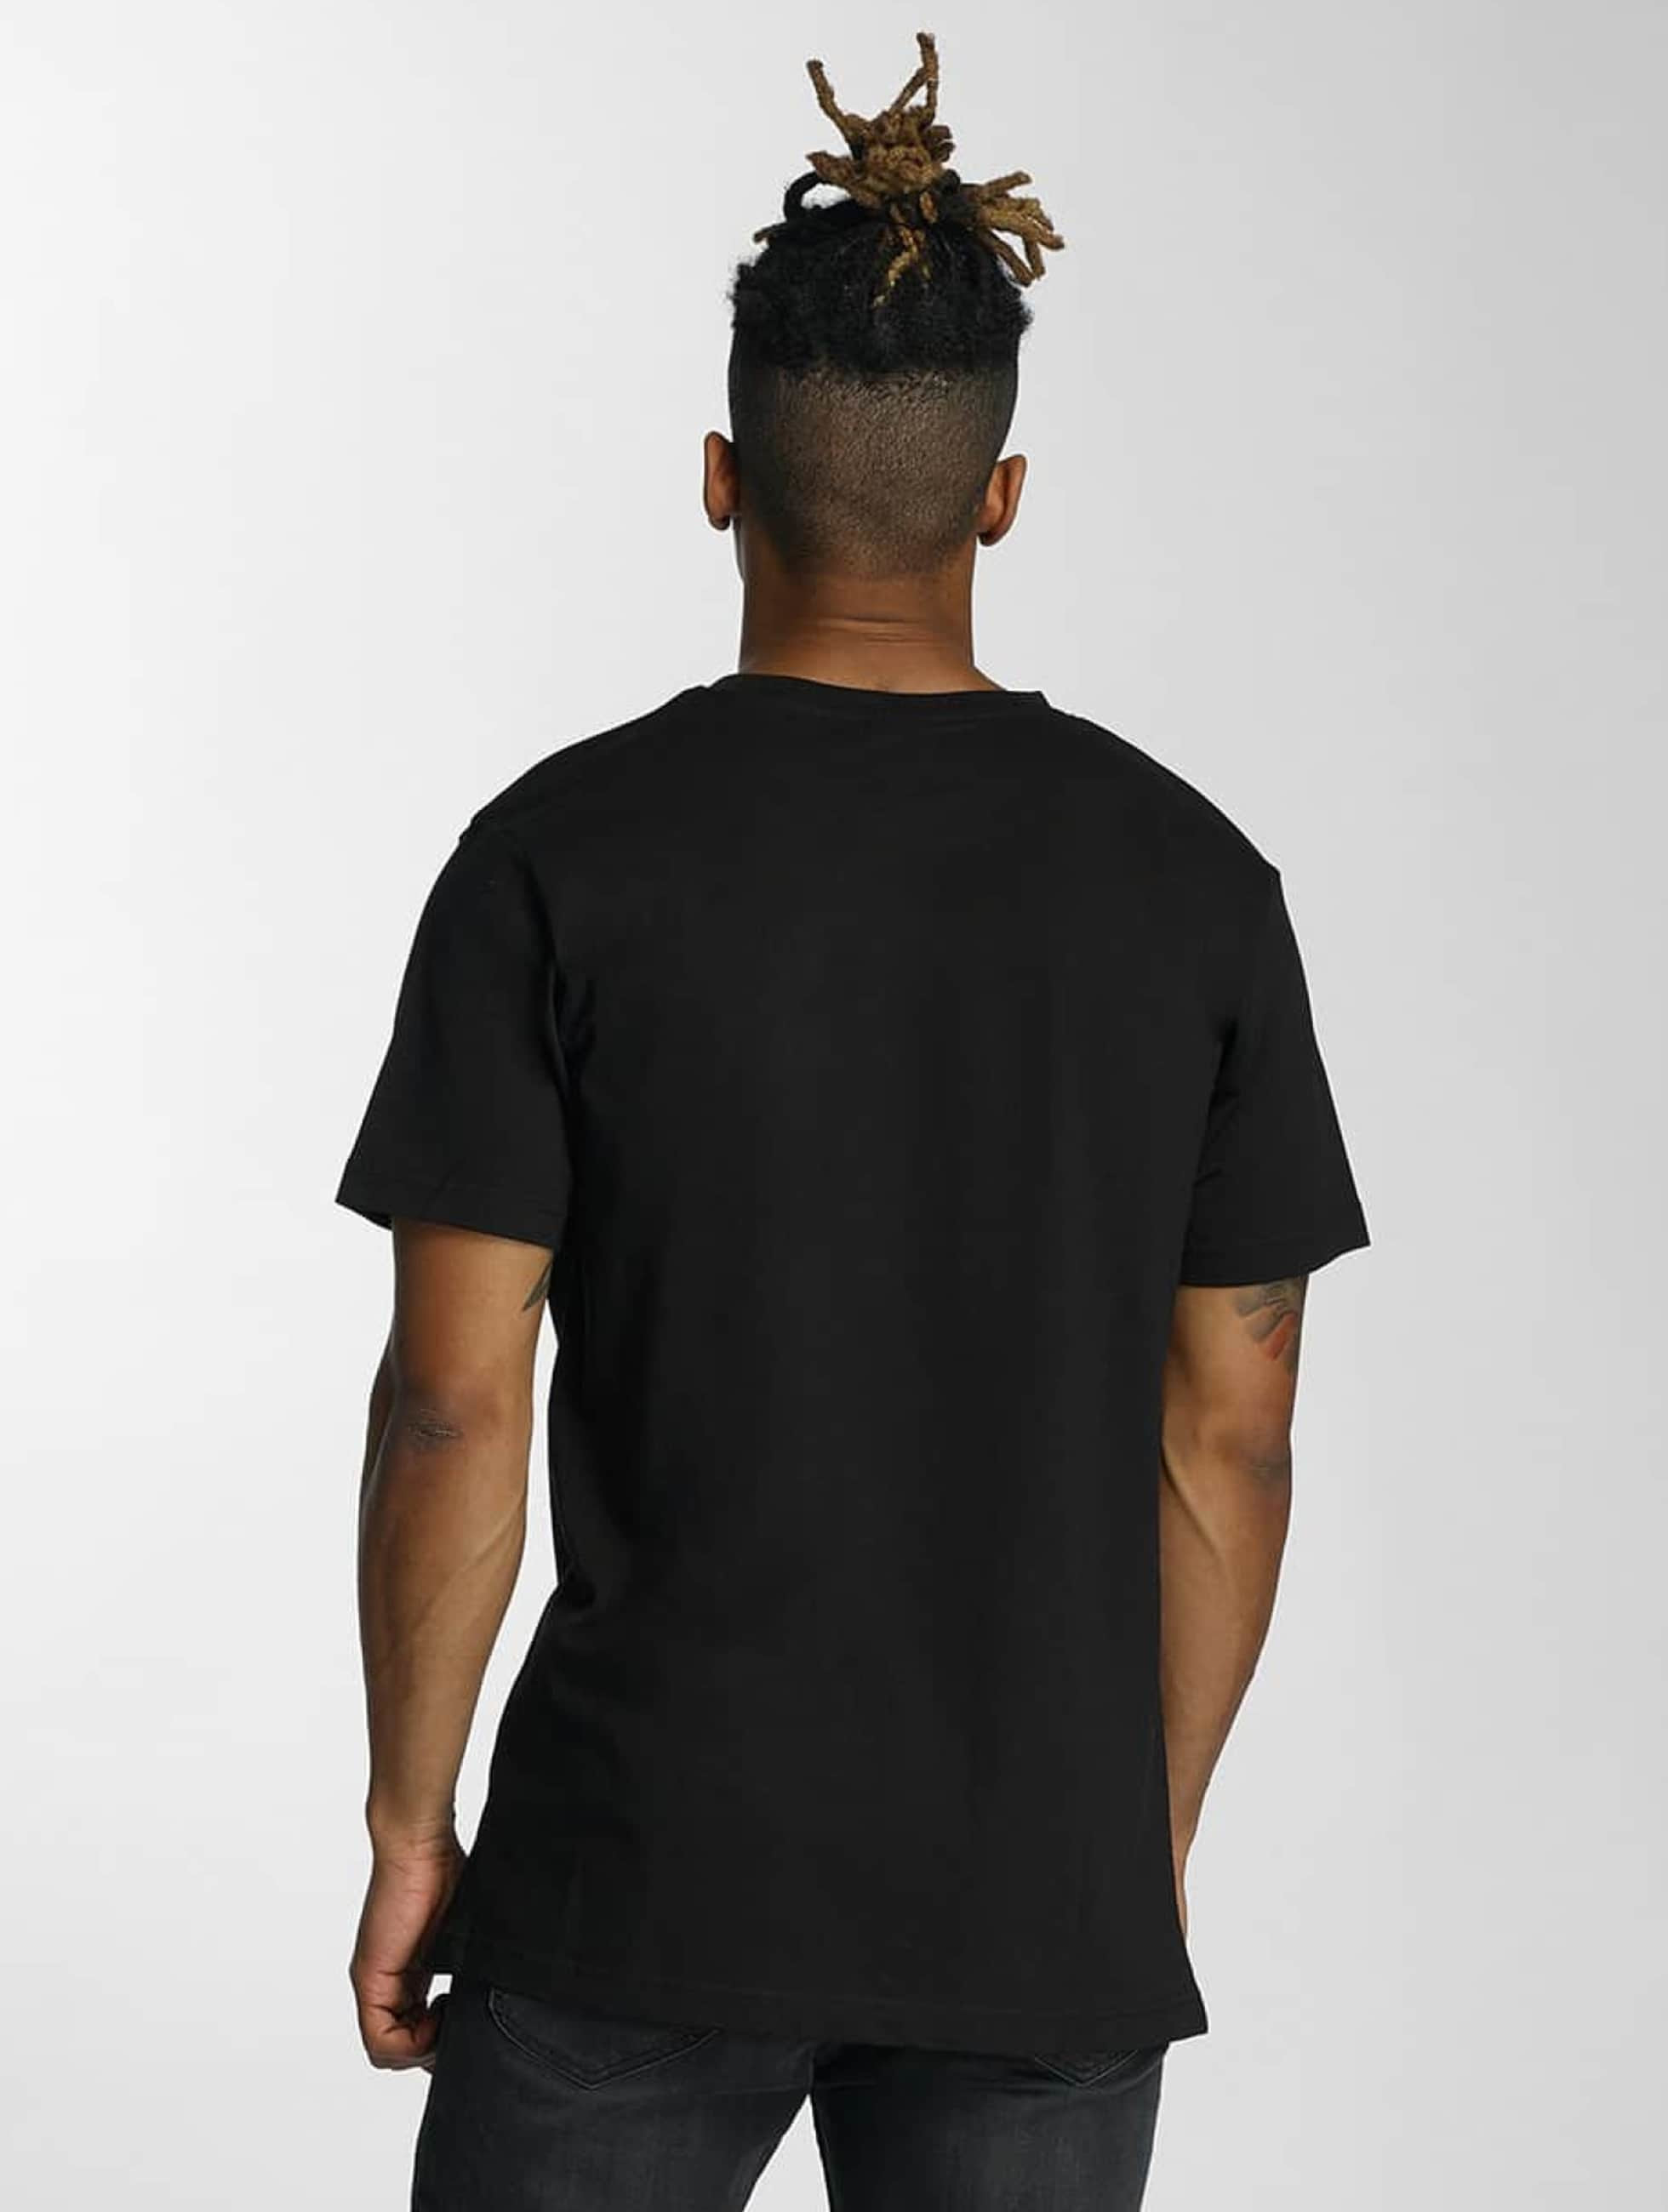 Mister Tee T-shirt 99 Problems nero